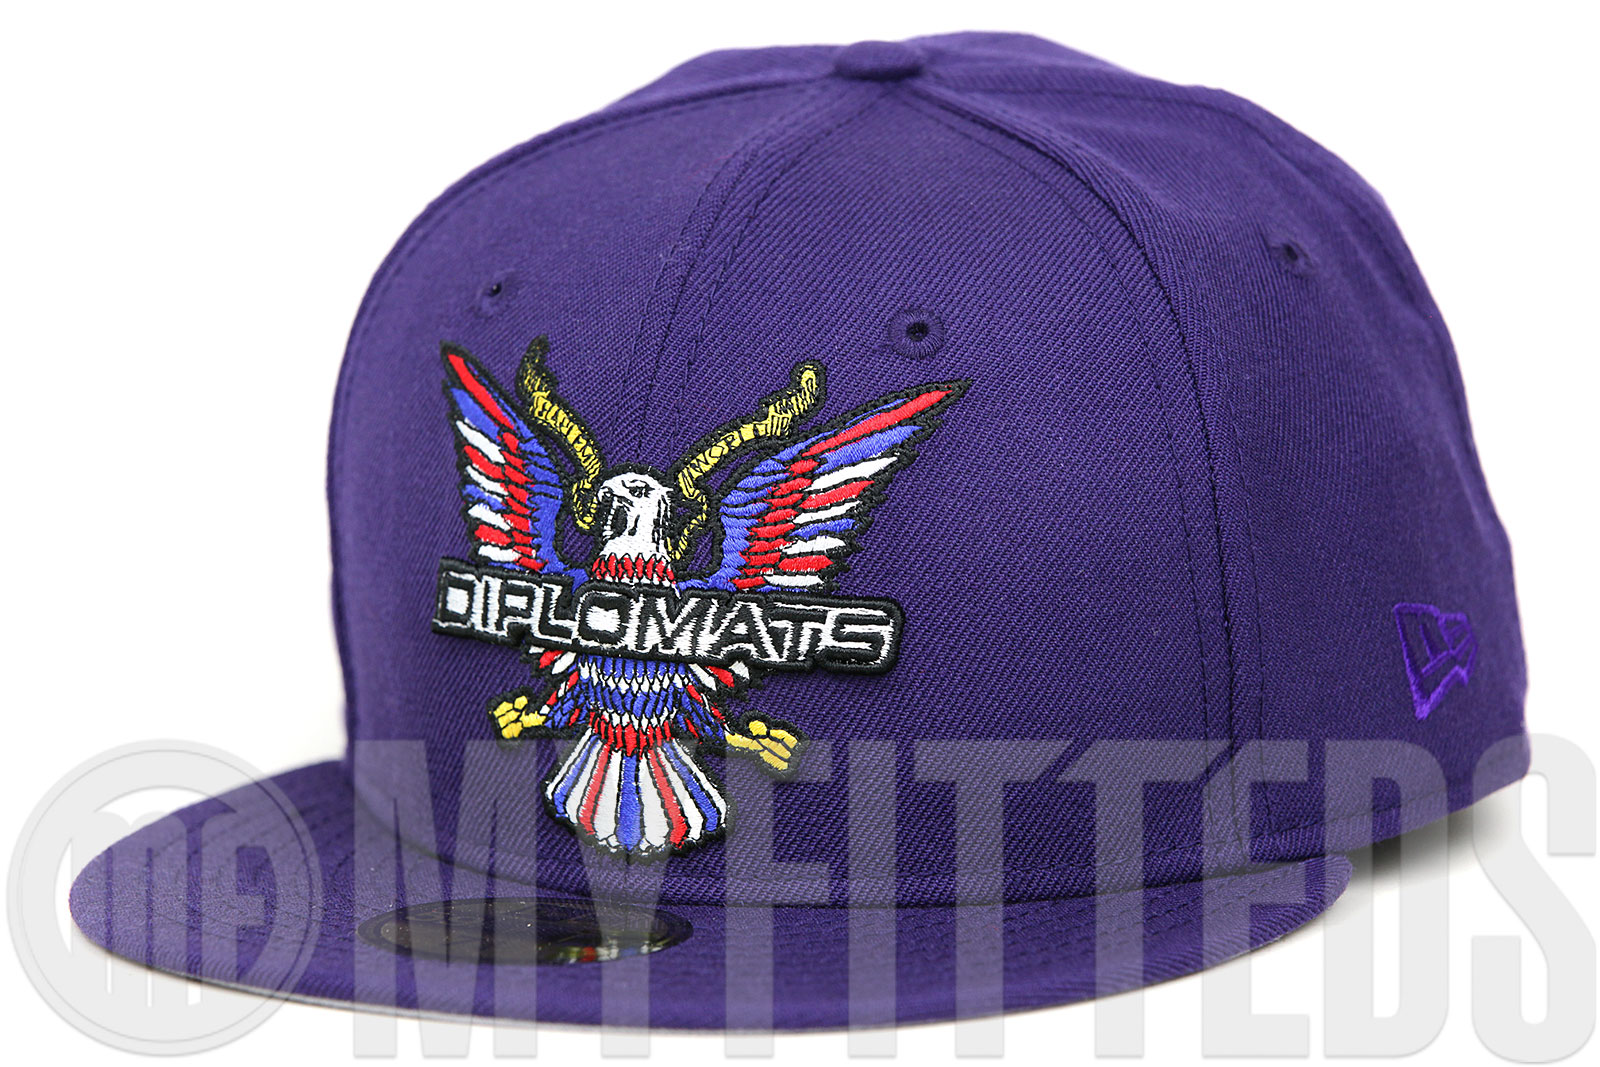 diplomats-dipset-harlem-world-eagle-logo-purple-city-inspired-concord-multi-color-new-era-hat-2.jpg